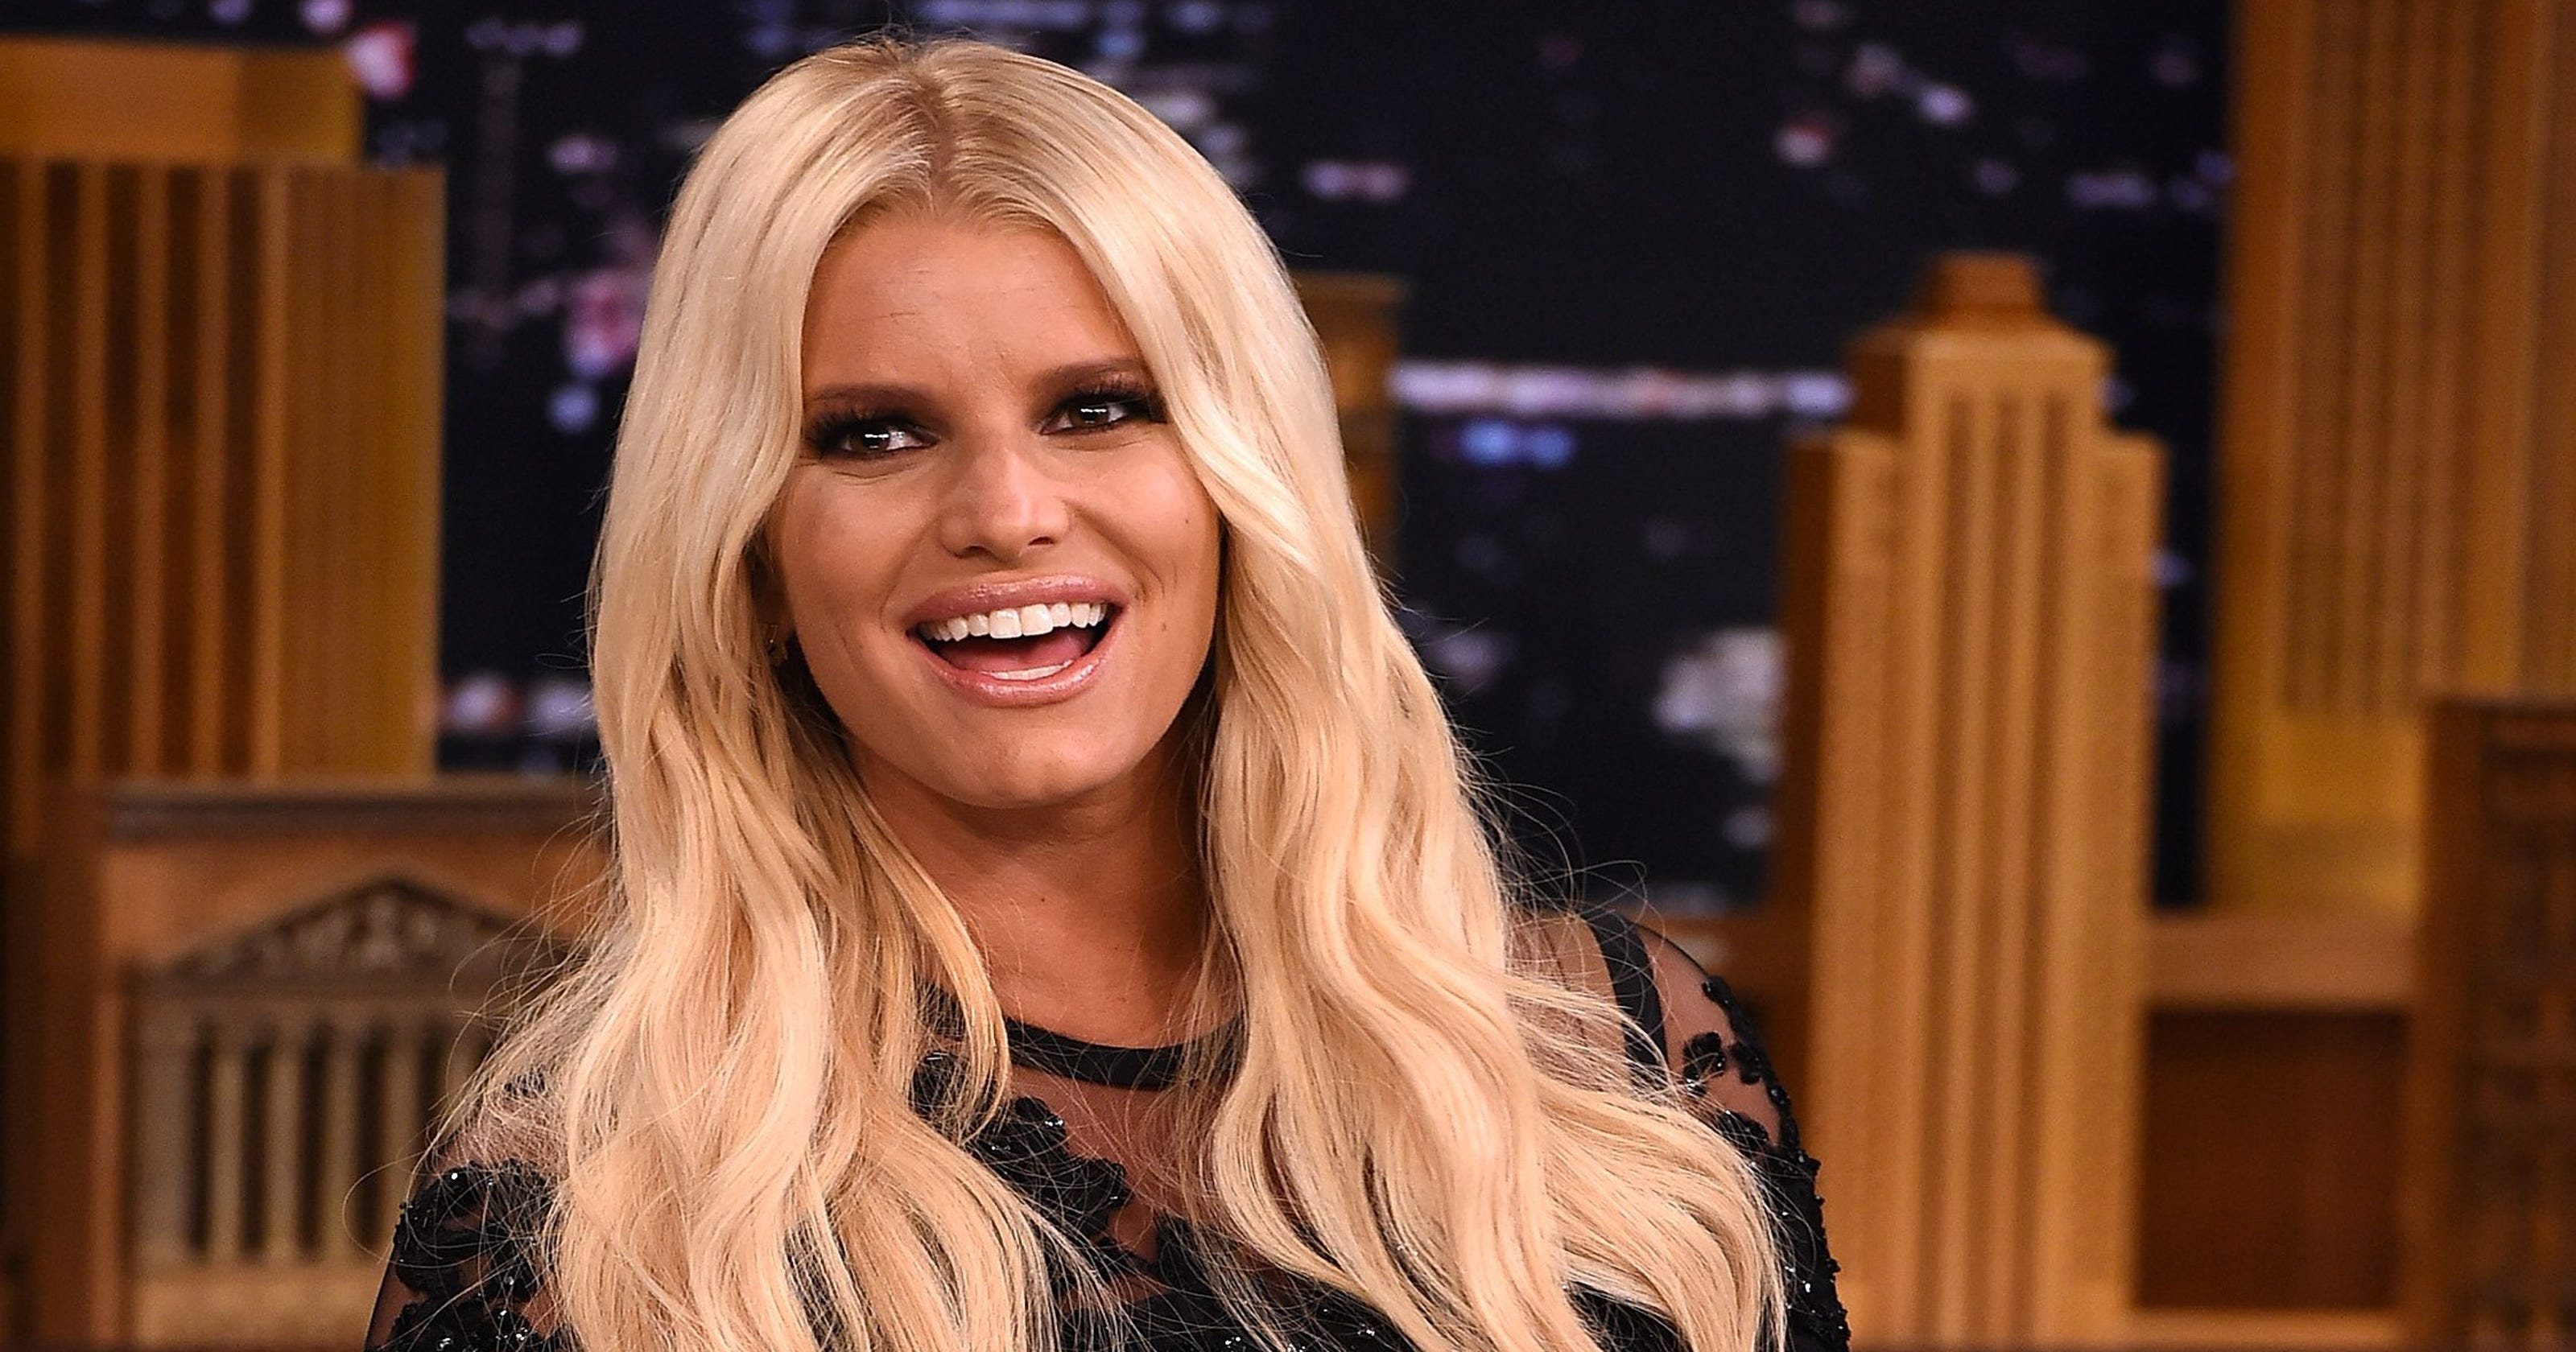 Jessica Simpson marks birthday with topless pool photo